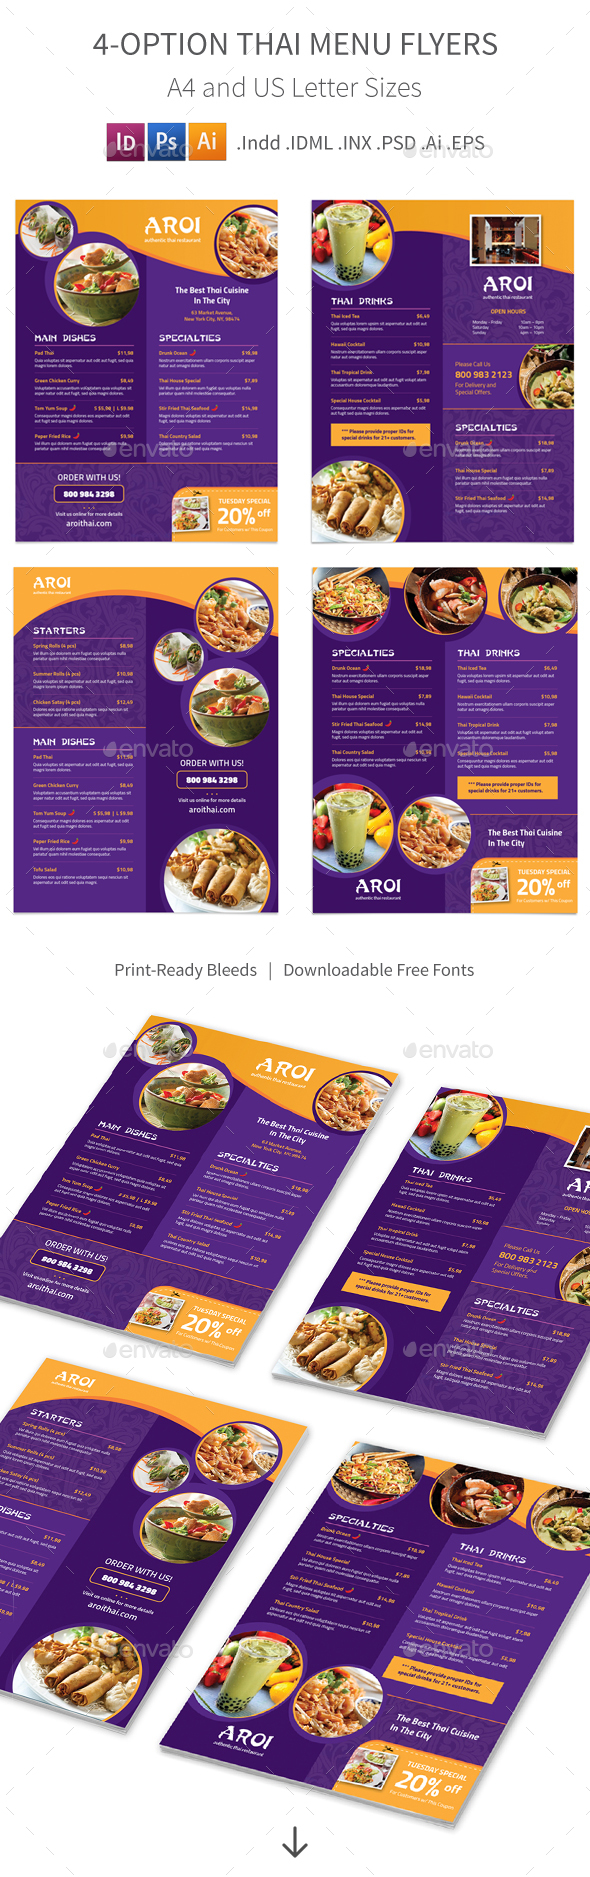 Thai Menu Flyers – 4 Options - Food Menus Print Templates